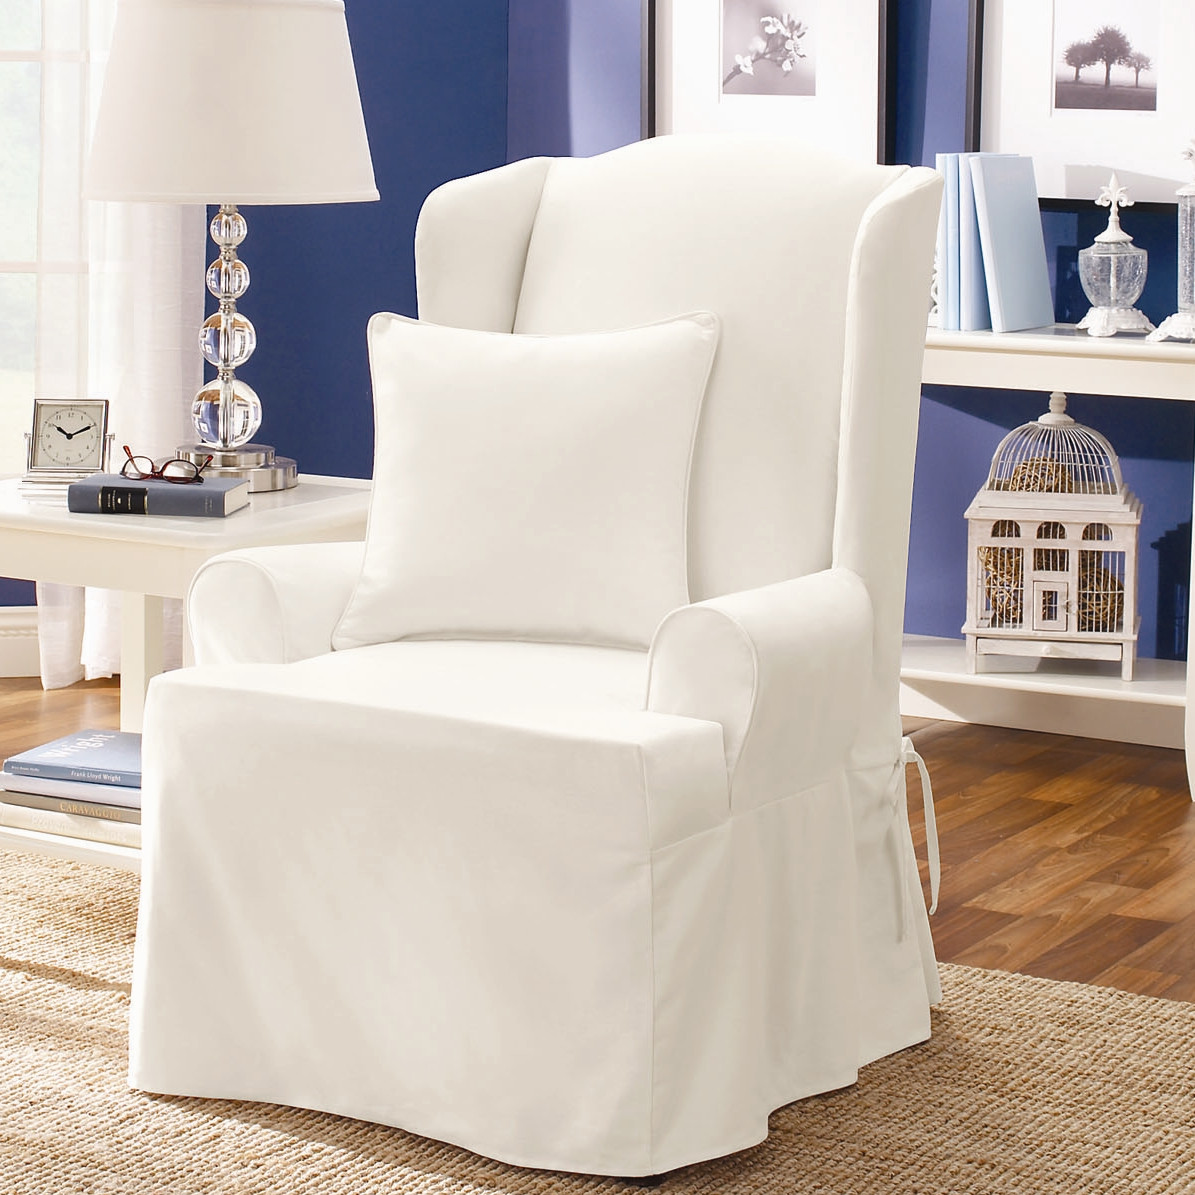 Slipcover For Chair Homesfeed